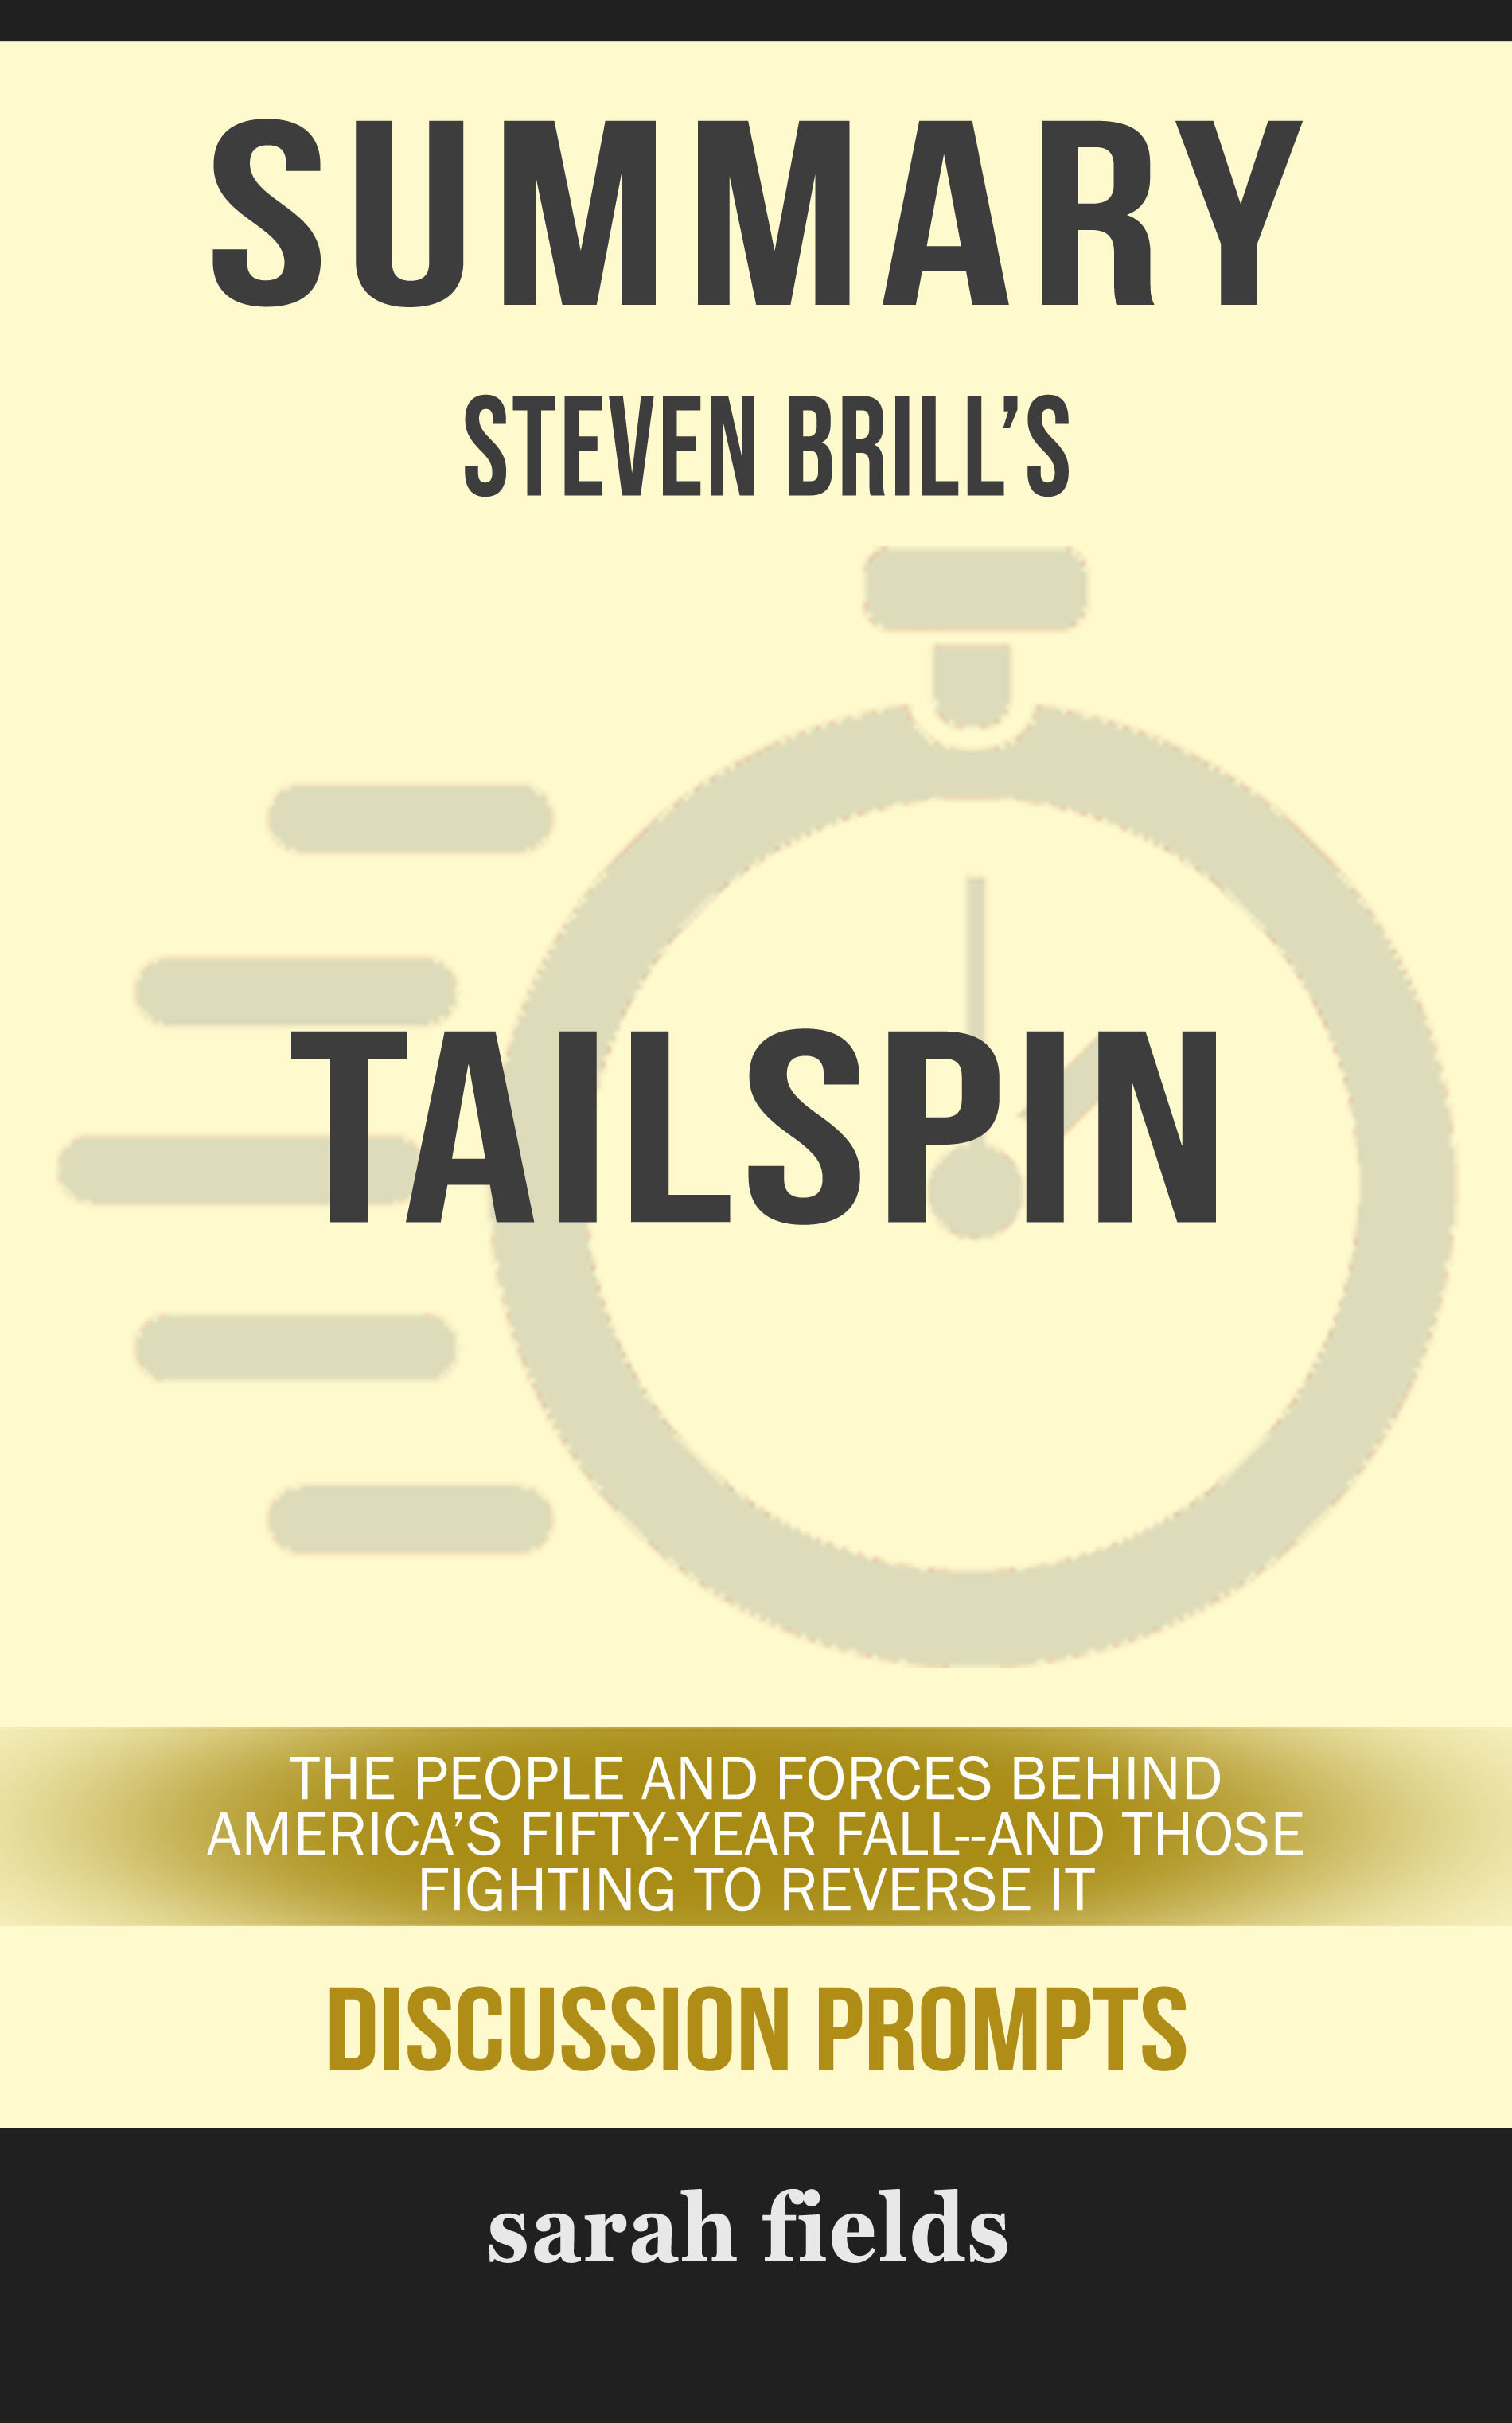 Summary of Tailspin: The People and Forces Behind America's Fifty-Year Fall--and Those Fighting to Reverse It by Steven Brill